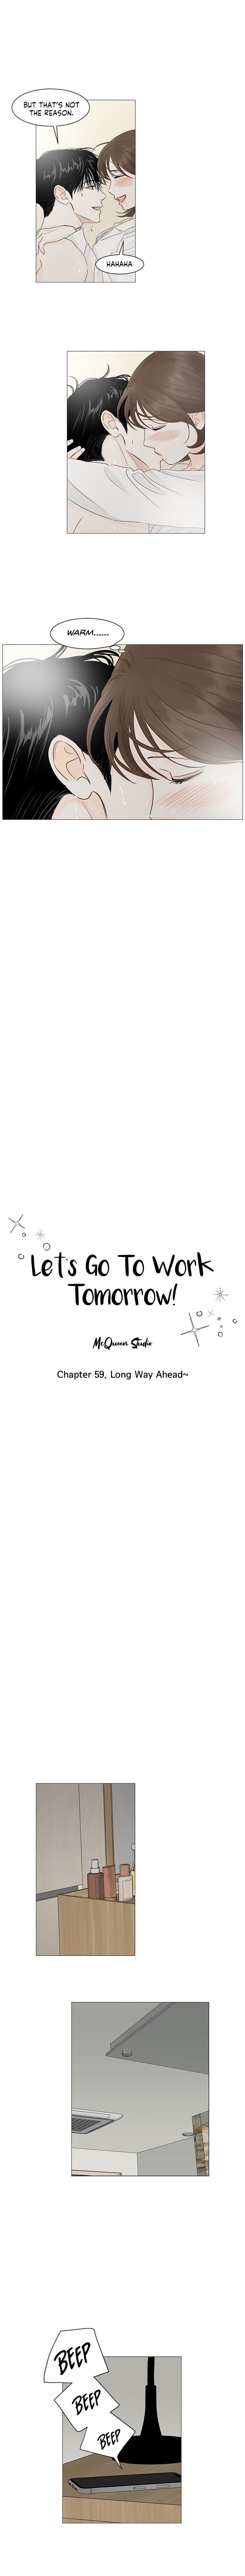 Let's go to work tommorow ! - chapter 59 - #3